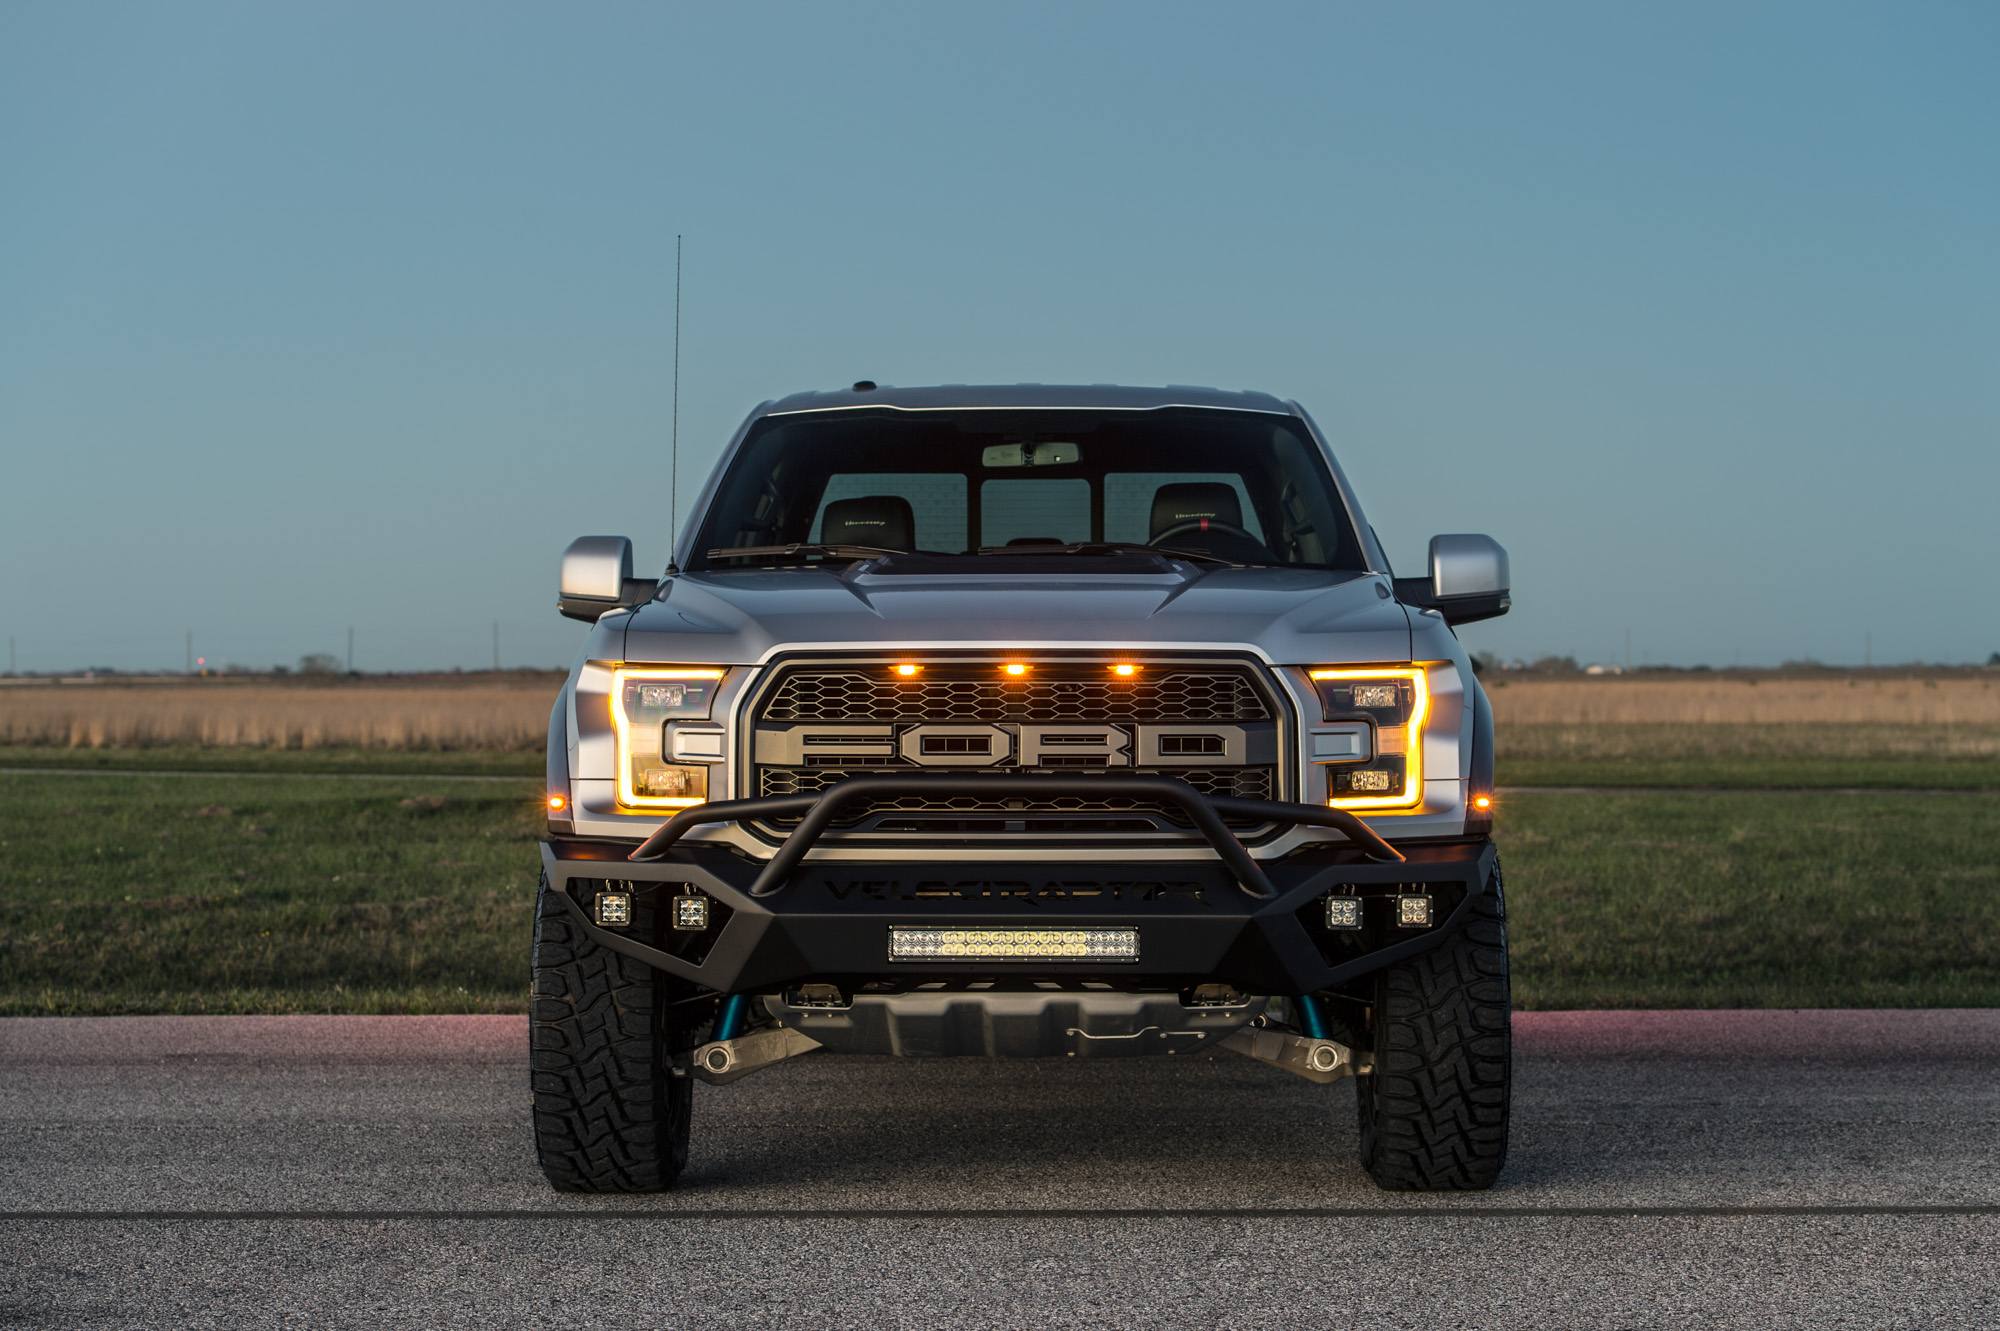 2017 Ford F150 Lifted >> Hennessey Performance Tunes The 2017 Ford F-150 Raptor To 605 HP - autoevolution